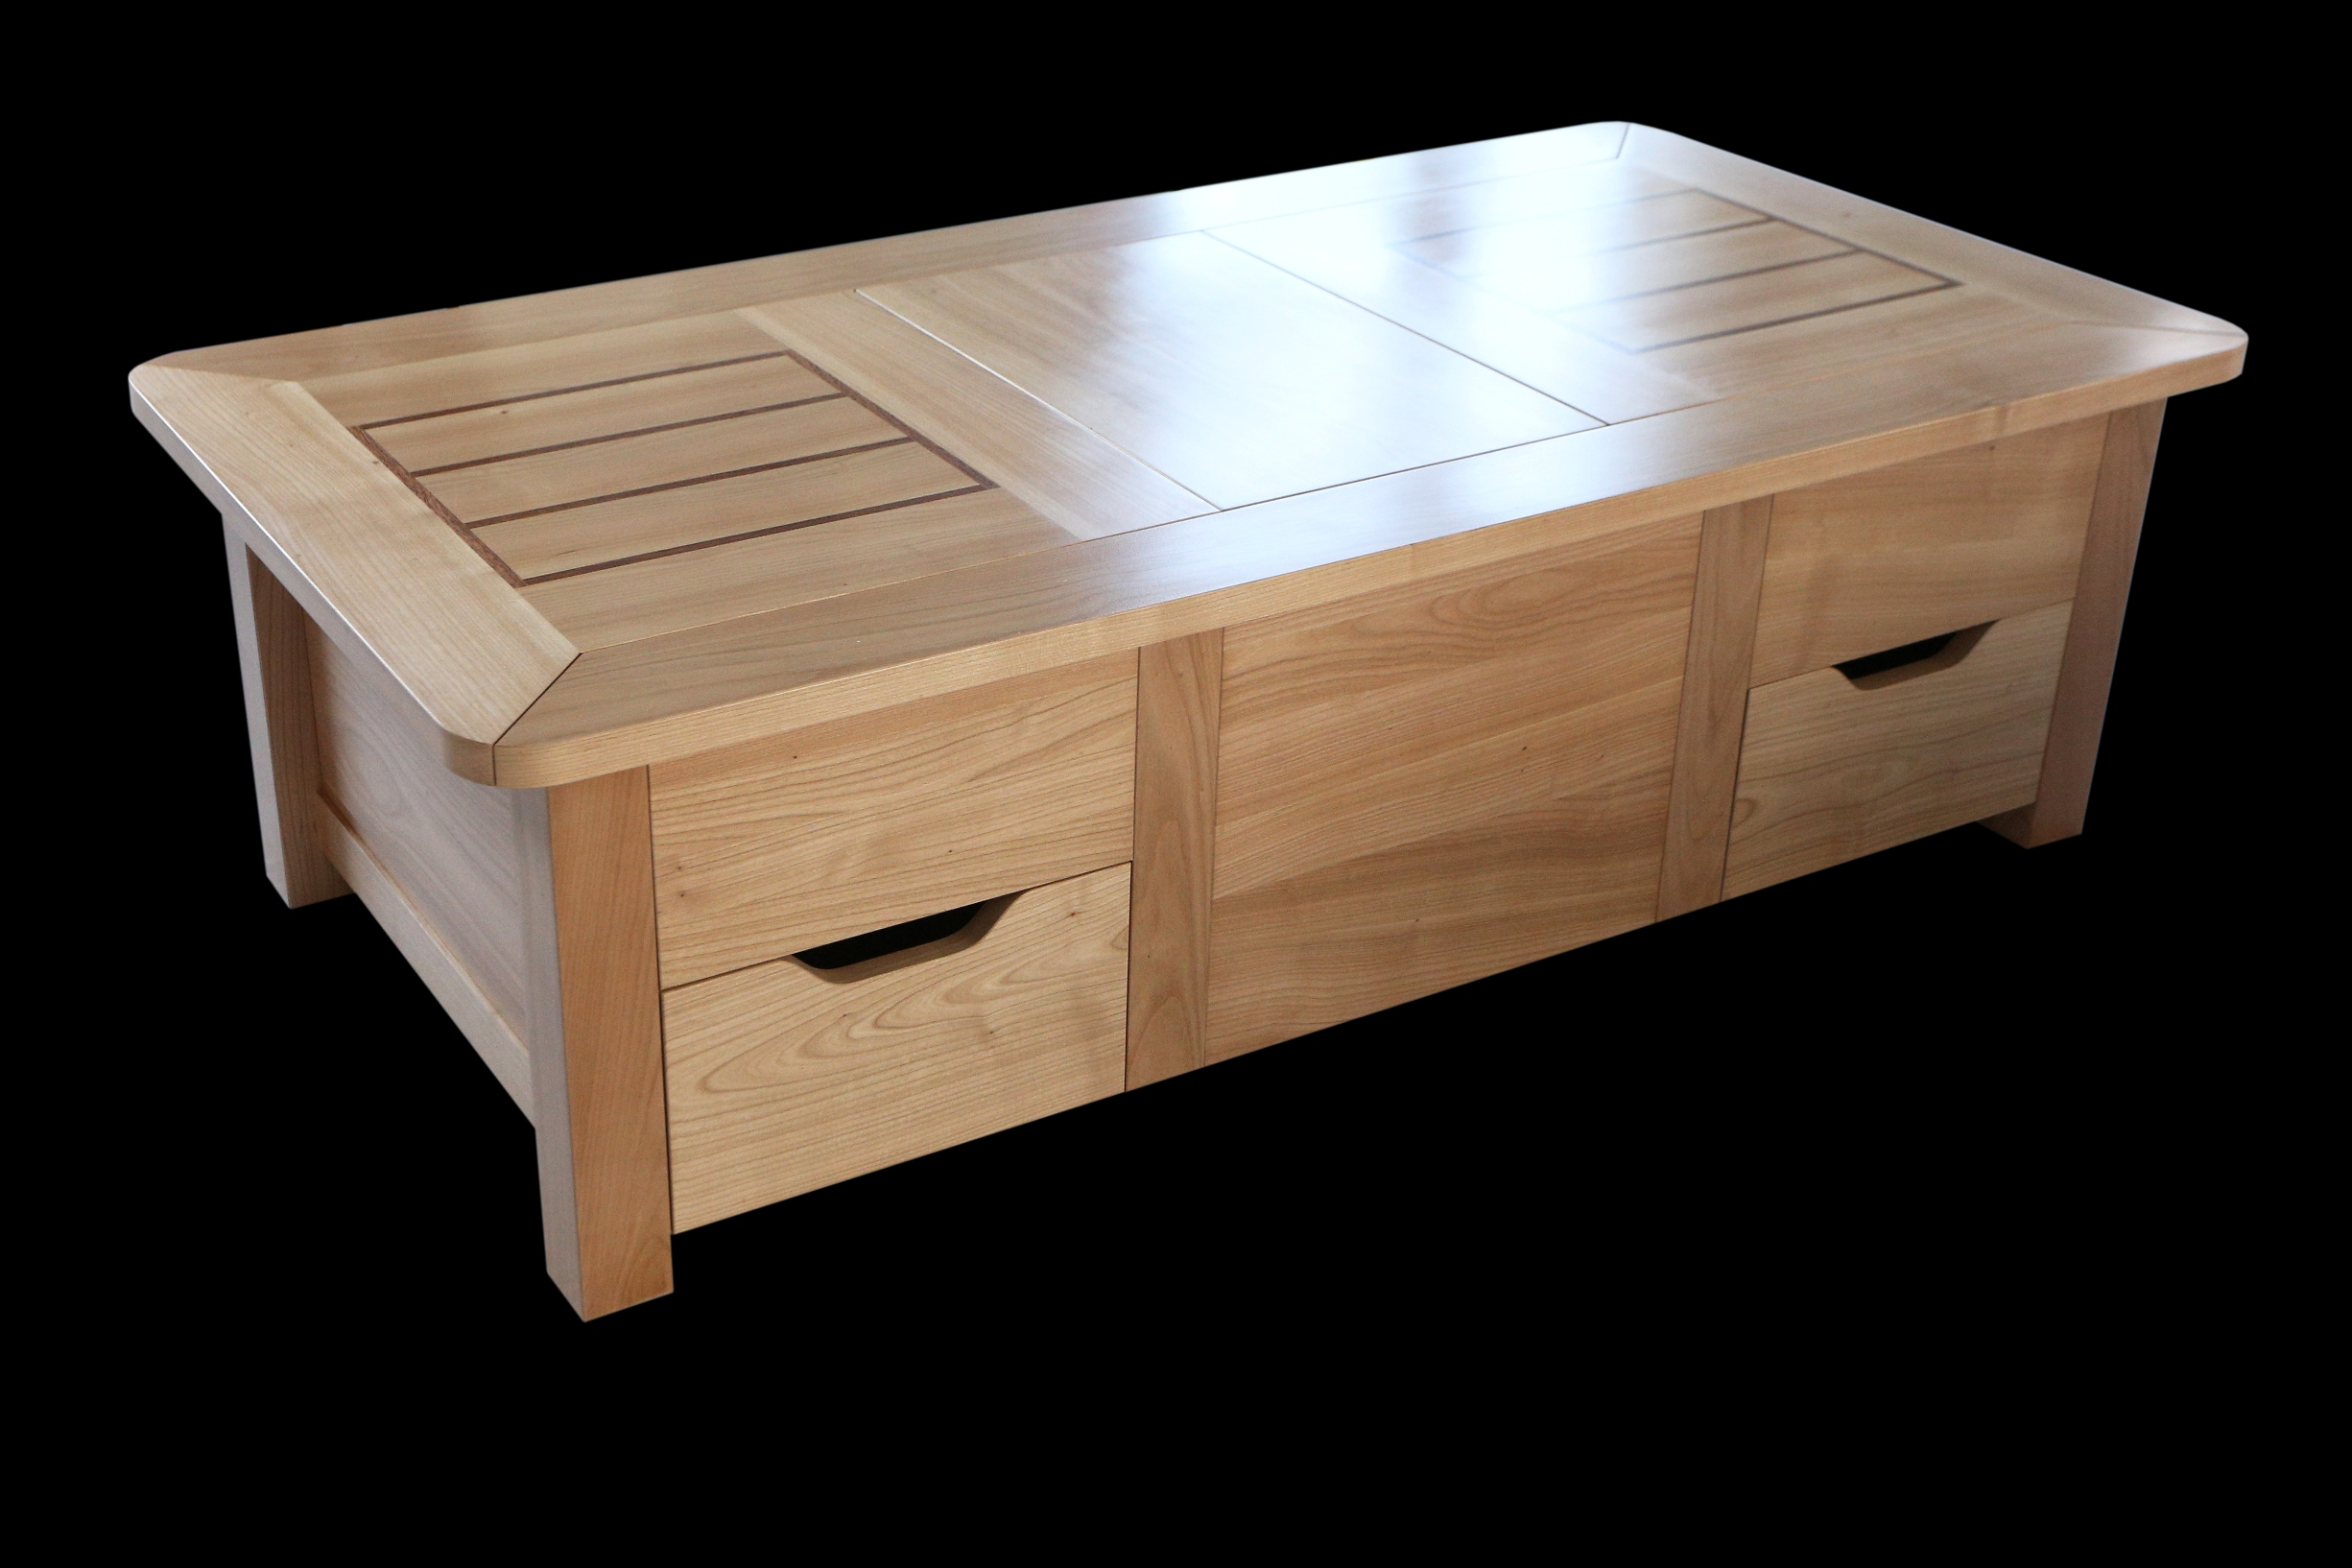 Une table coffre moderne et astucieuse bois le bouvet for Modele de table de salon moderne